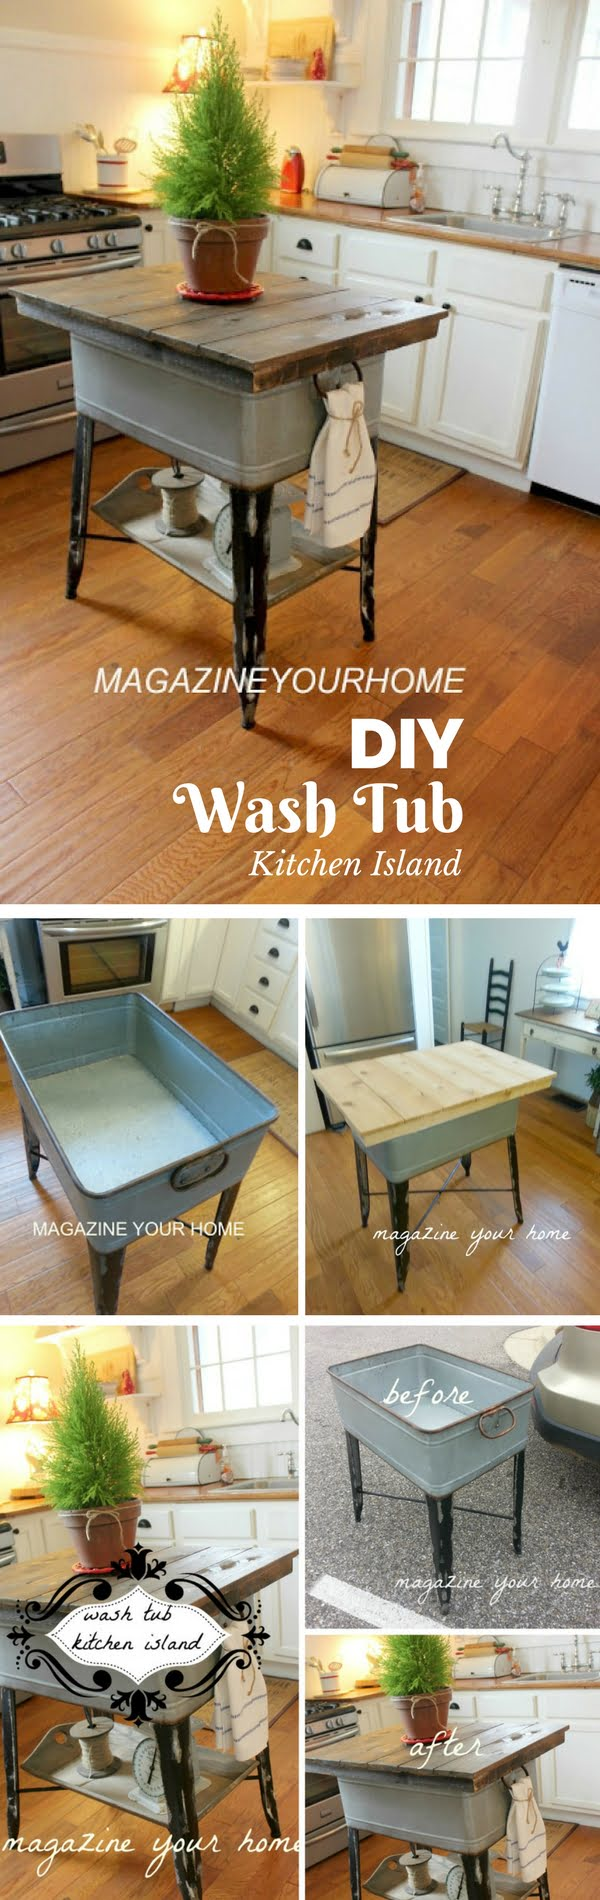 kitchen island from a wash tub